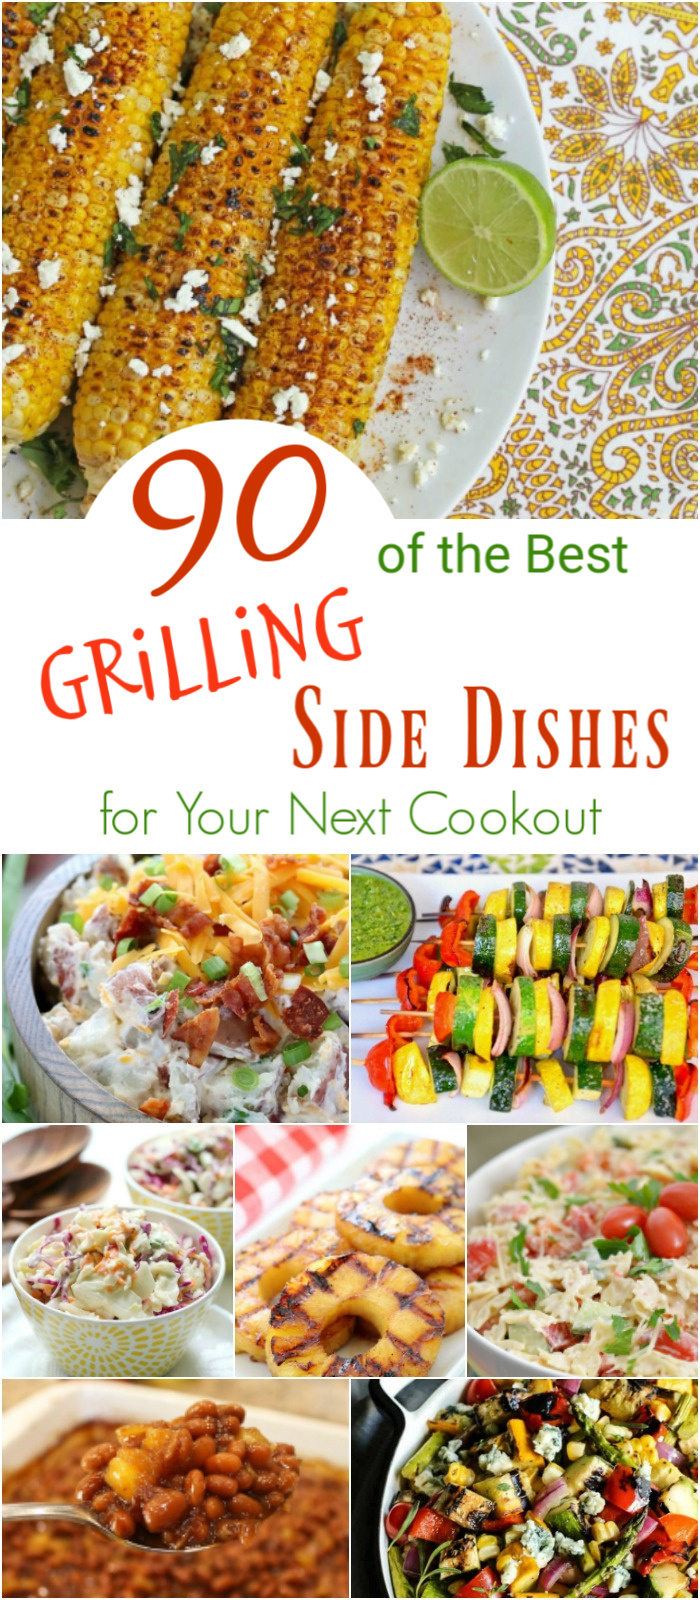 90 of the Best Grilling Side Dishes for Your Next Cookout